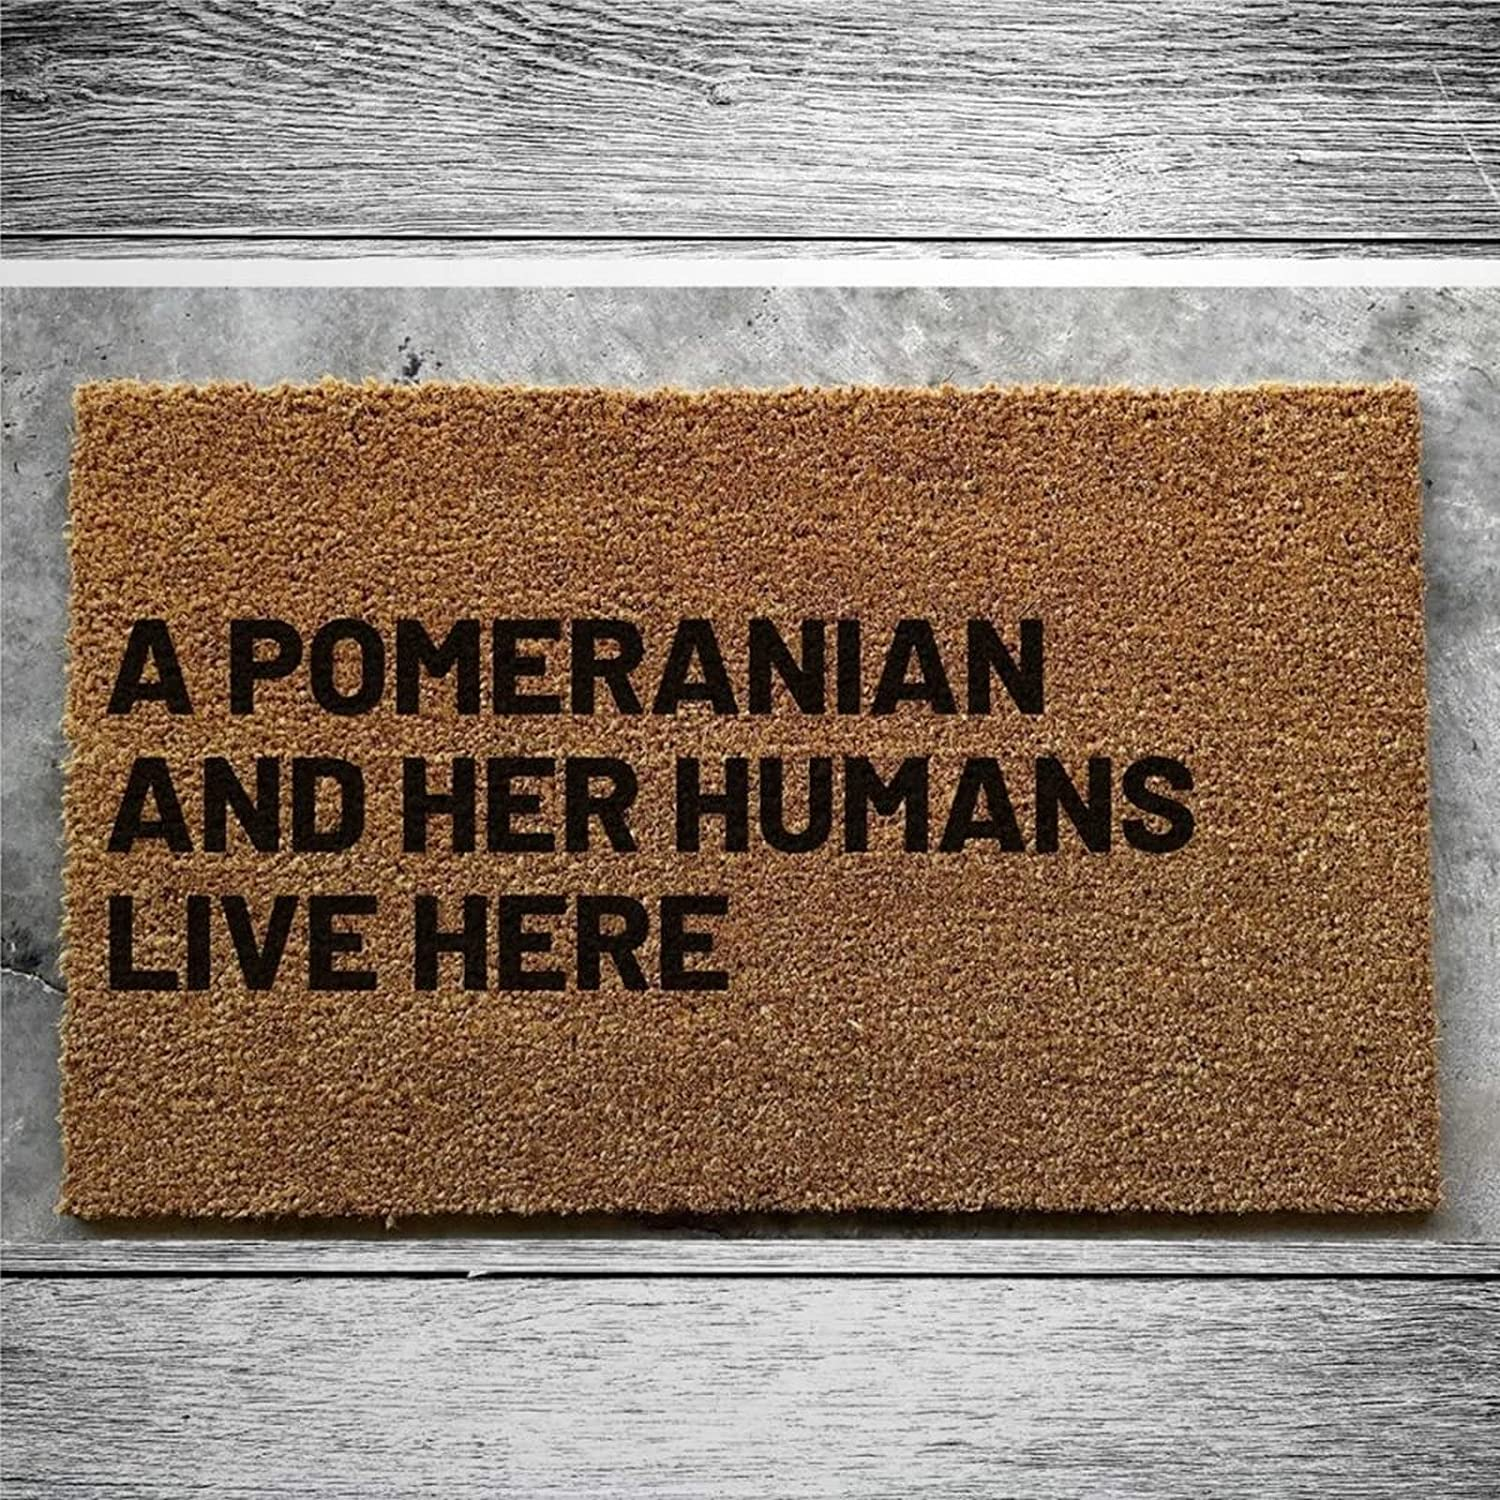 A Pomeranian and Her Sale special price Humans Live Here Doormat Outlet SALE Coir W Rustic Door